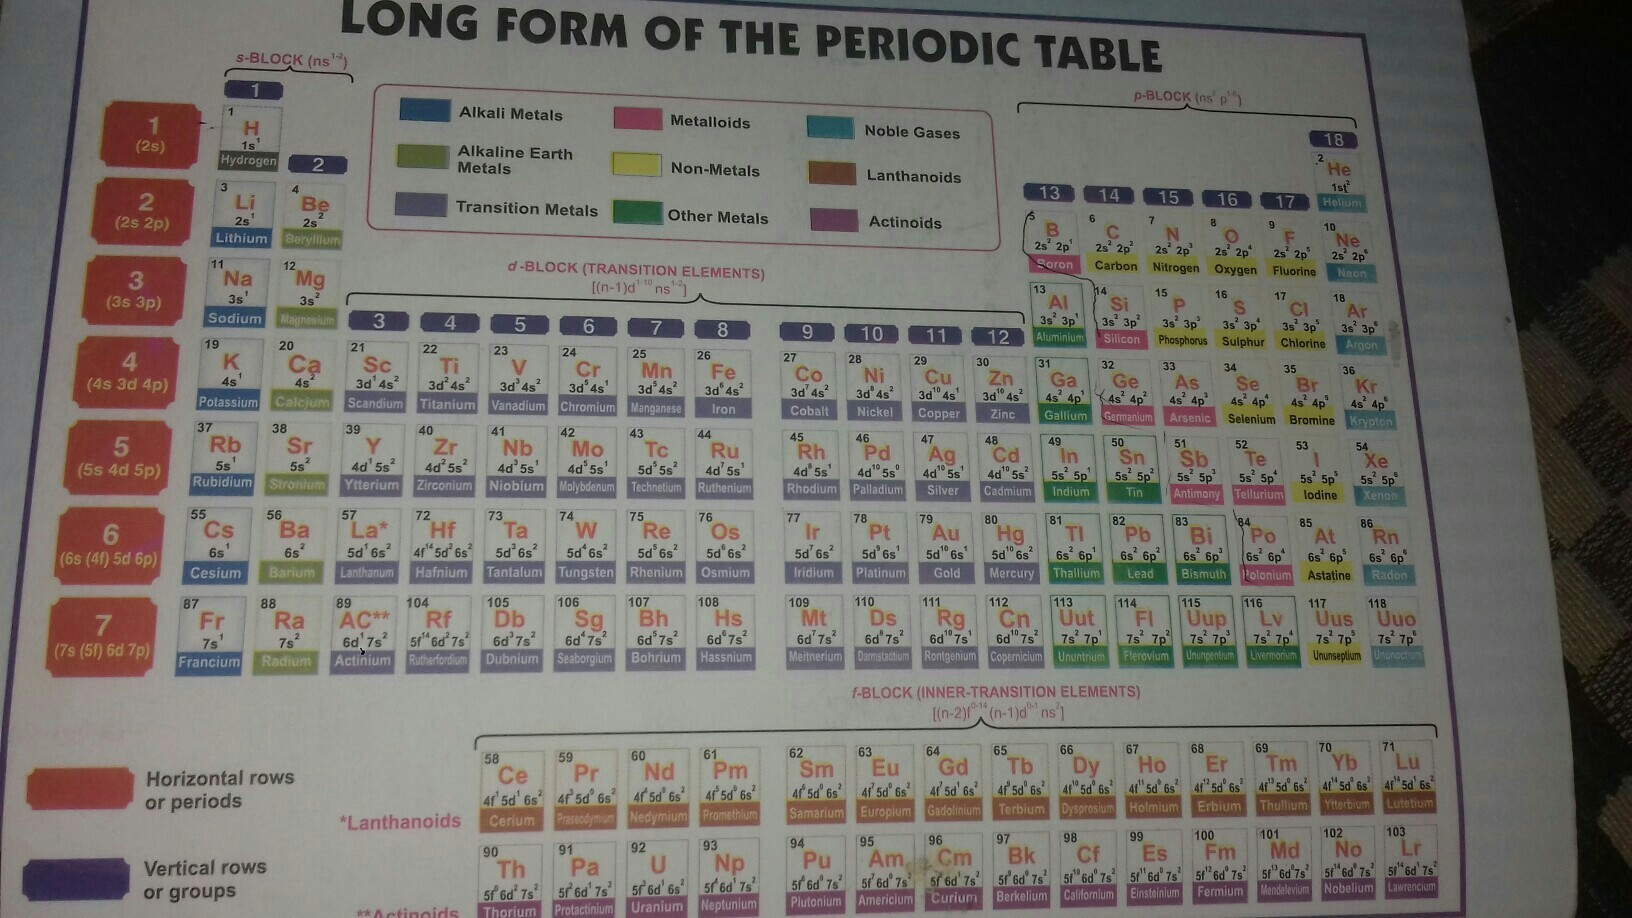 Draw The Periodic Table Of Elements With Names And Symbols